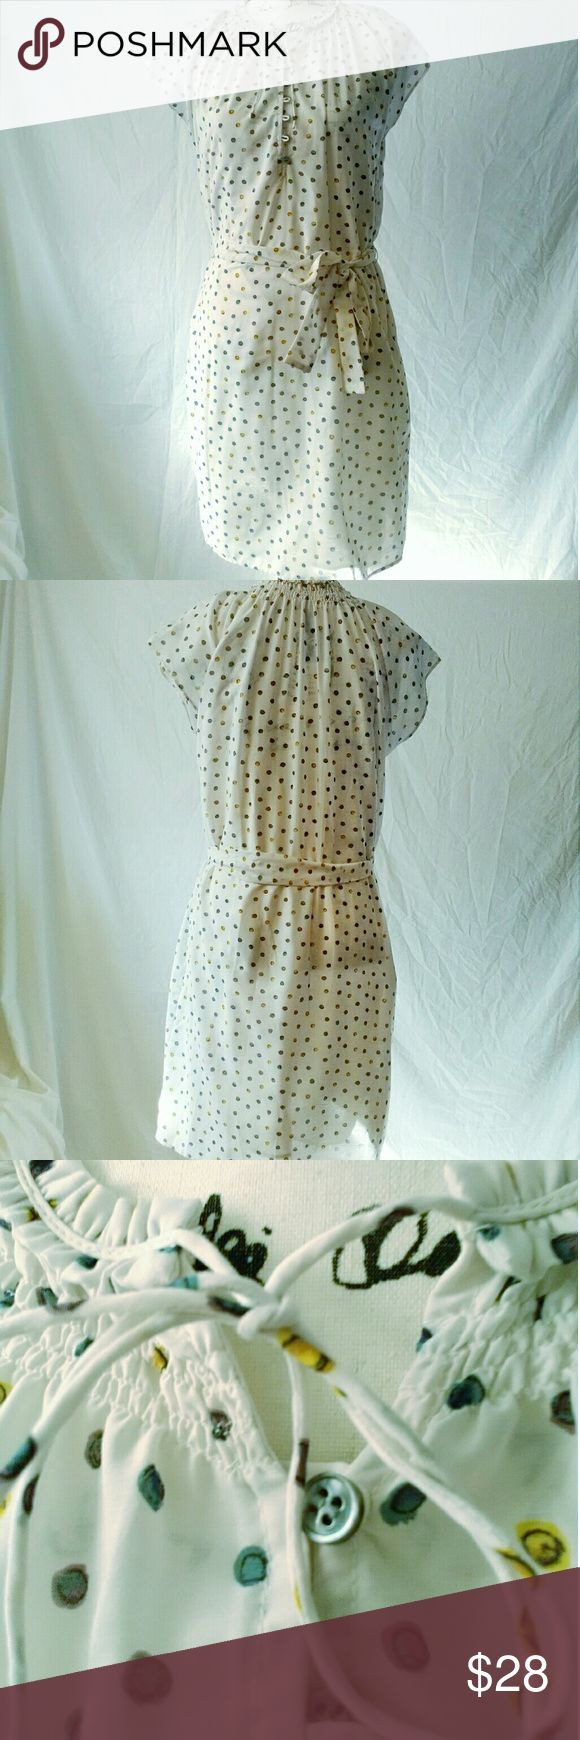 NWT MNG Off White Polka Dot Dress Tunic 6 New with tags MNG by Mango Off White Polka Dot Dress with sash belt.   This adorable and versatile polka dot tunic dress has a buttoned neckline that ties at the top, featuring a removable slip and sash belt. Mango  Dresses